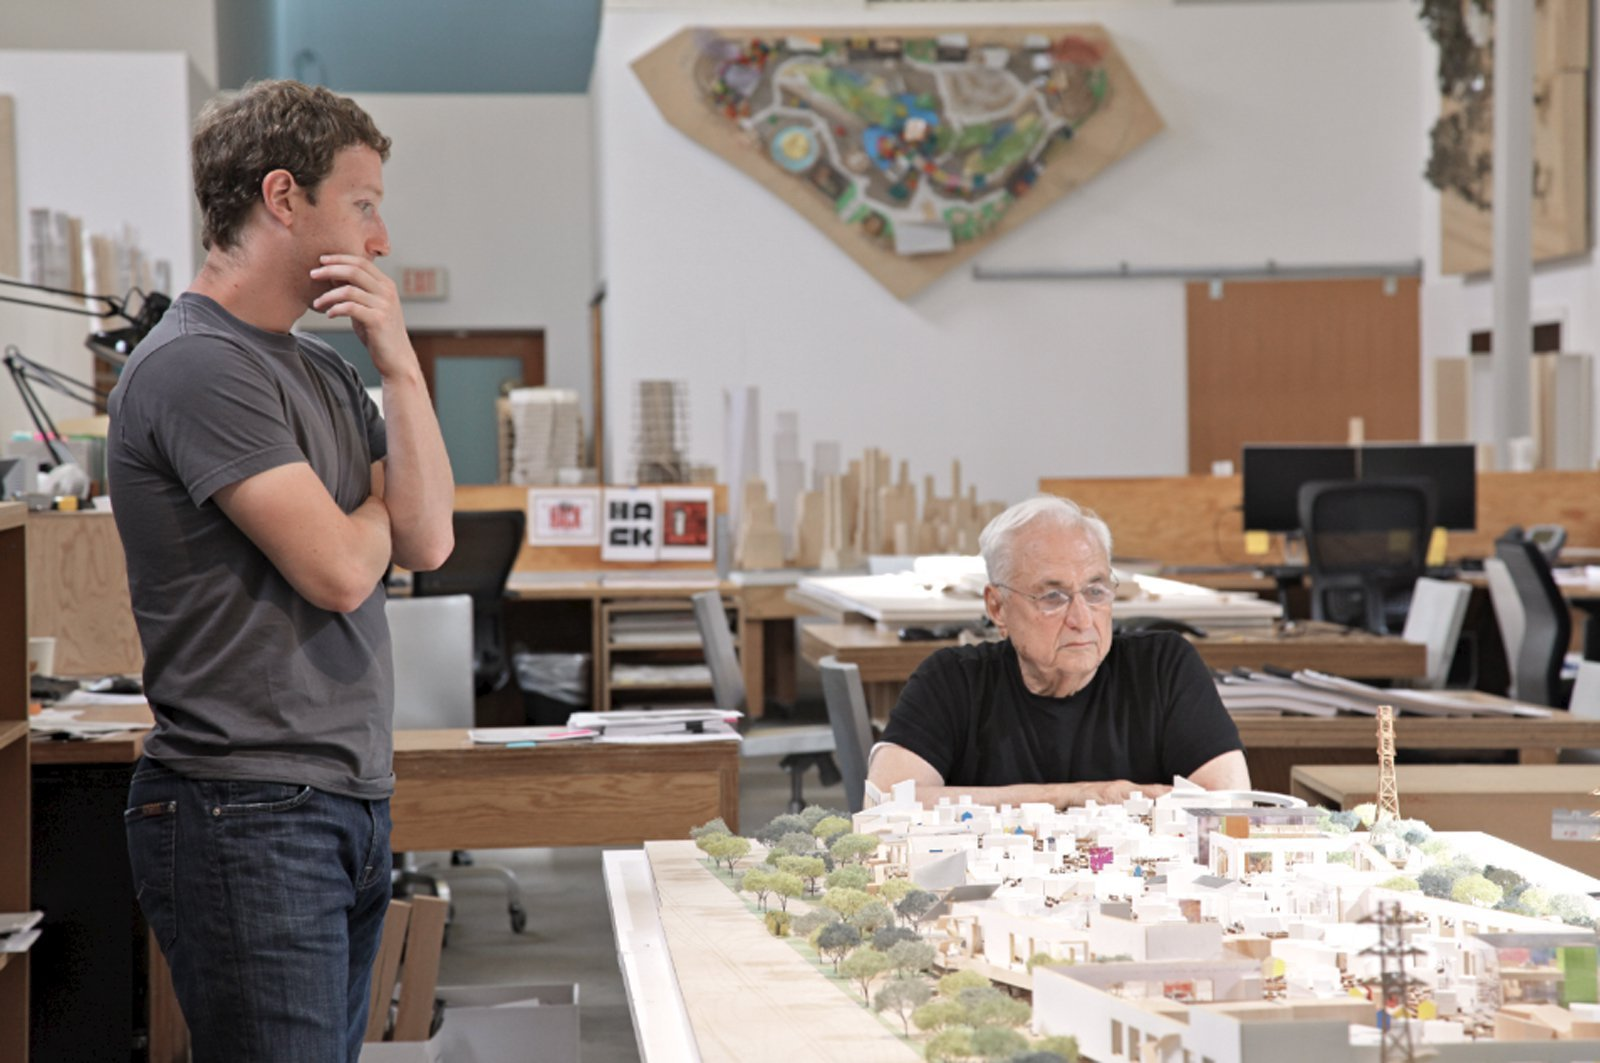 Facebook Frank Gehry ArchDaily Simple Frank Gehry Will Design Offices For Facebook In New York